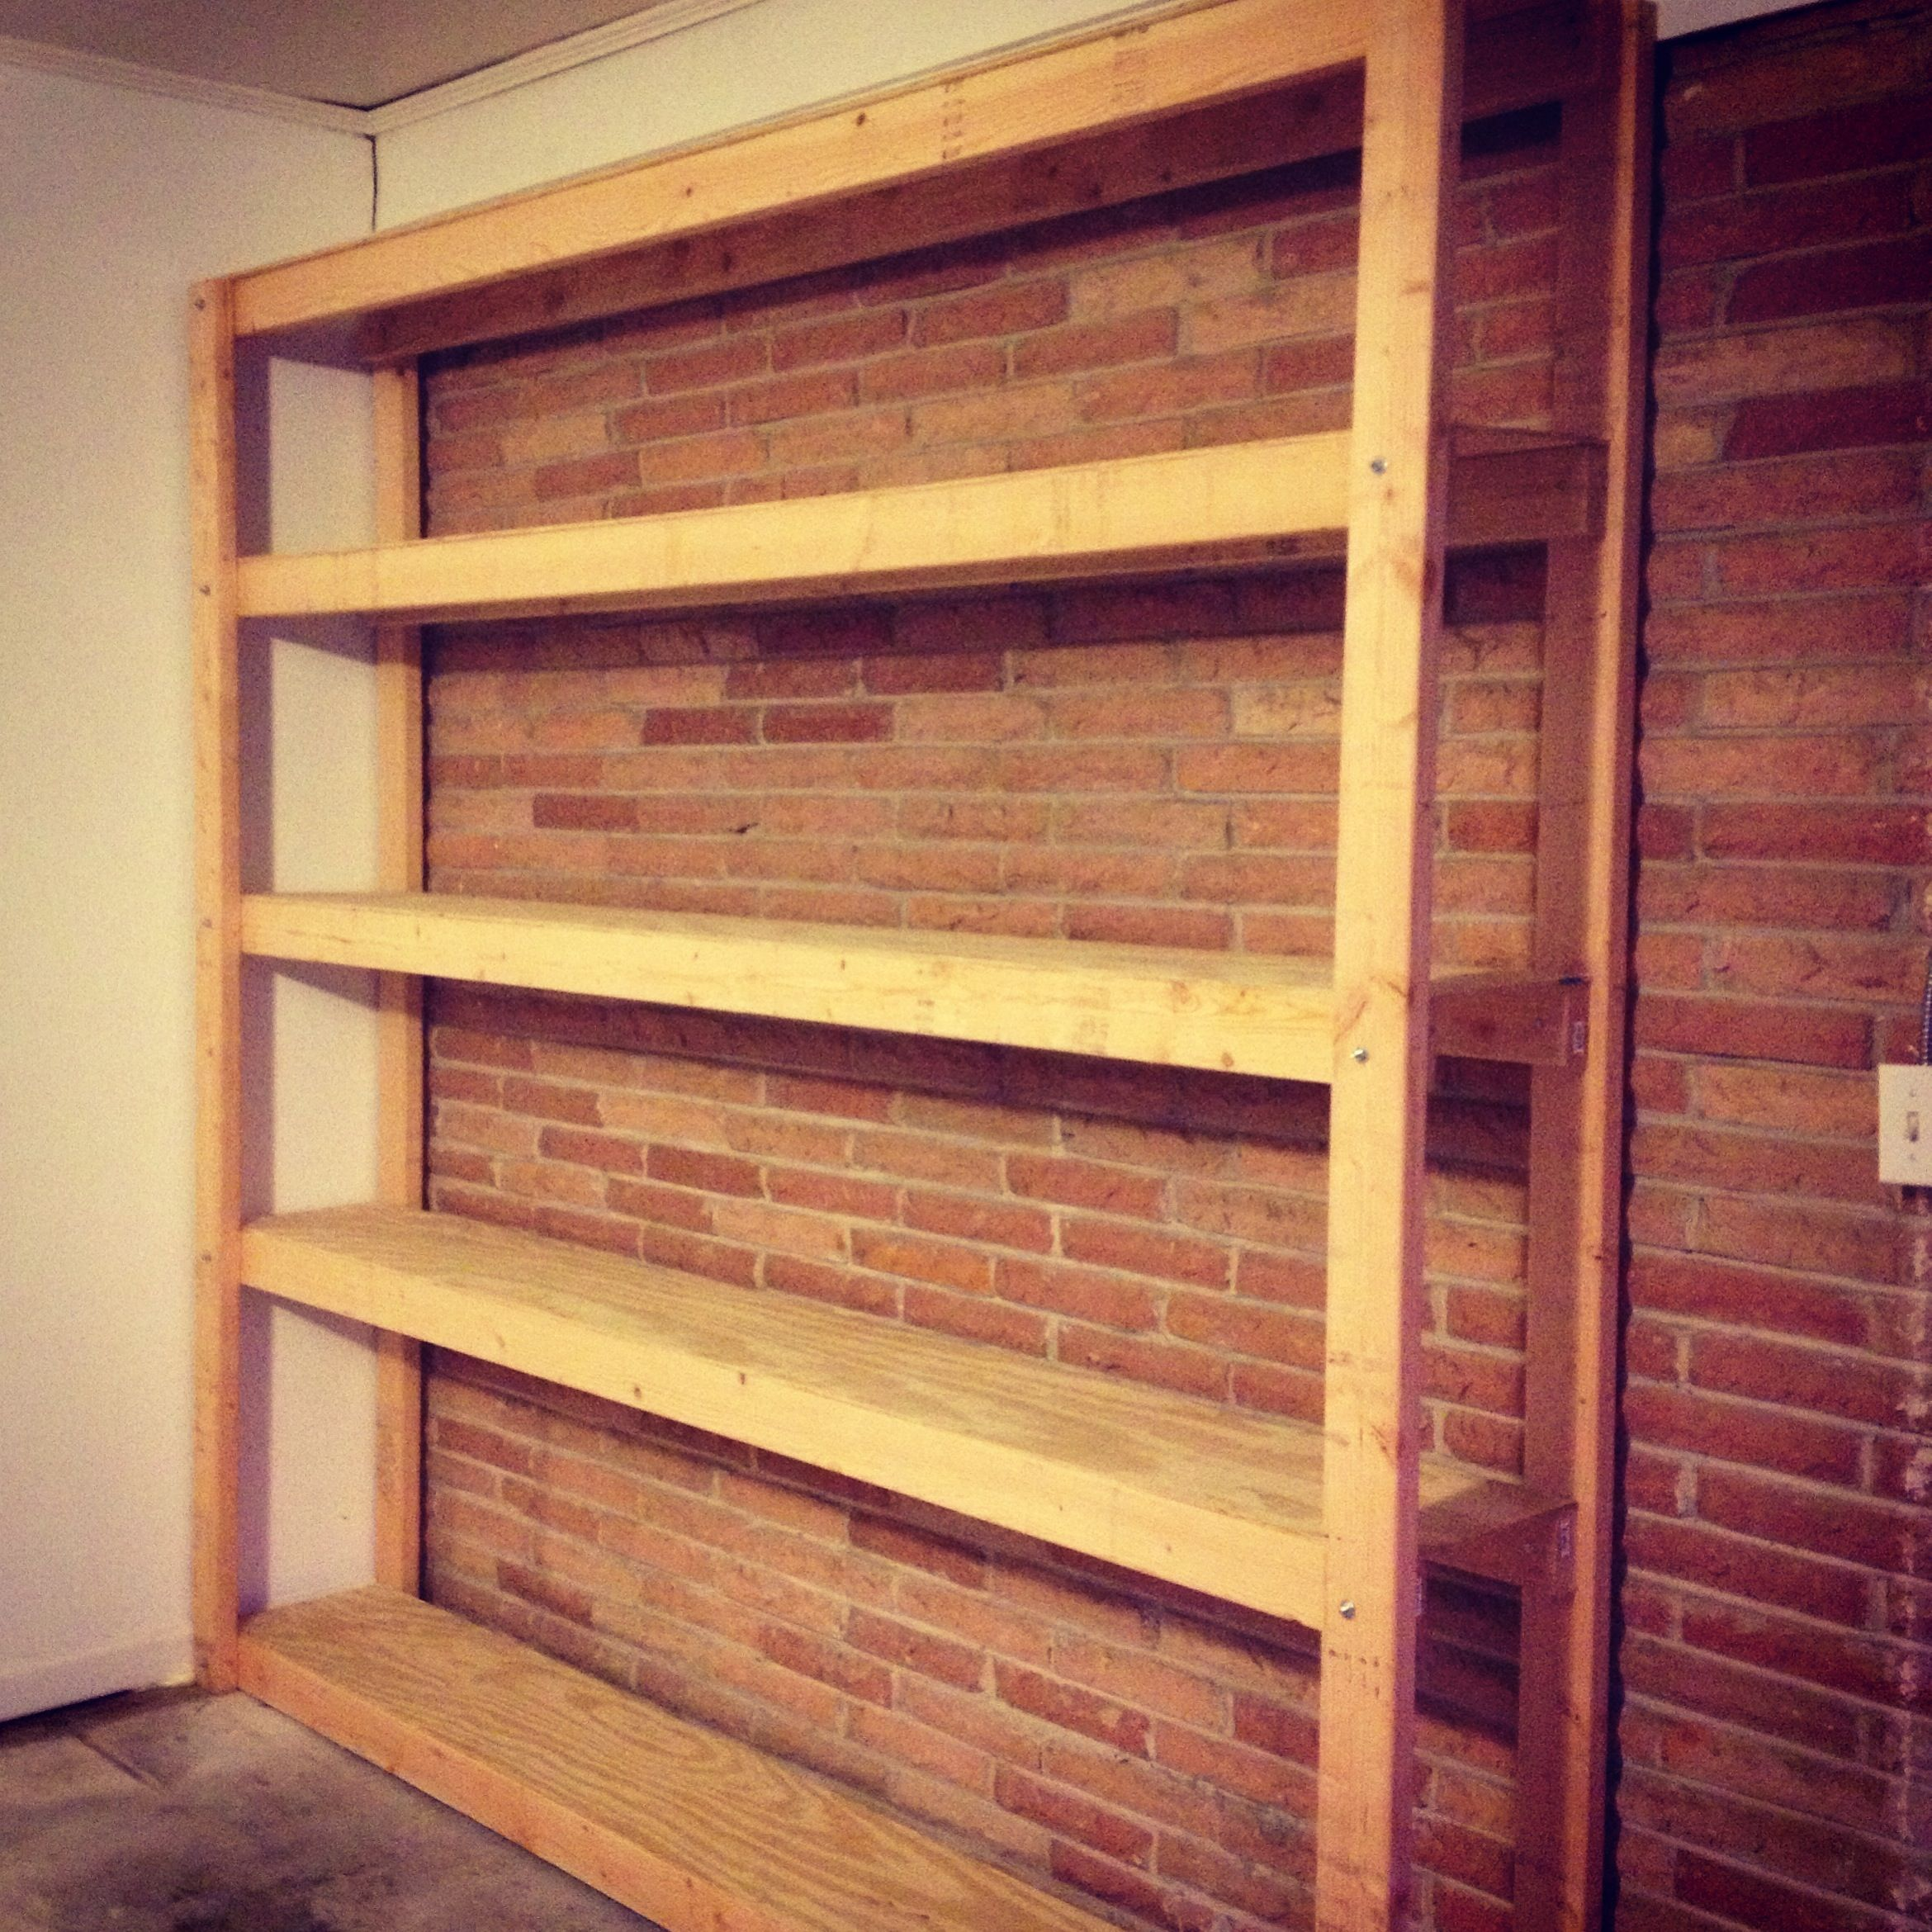 Diy Storage Shelves Basement Storage: This Would Make An Awesome Way To Store Homemade Soap